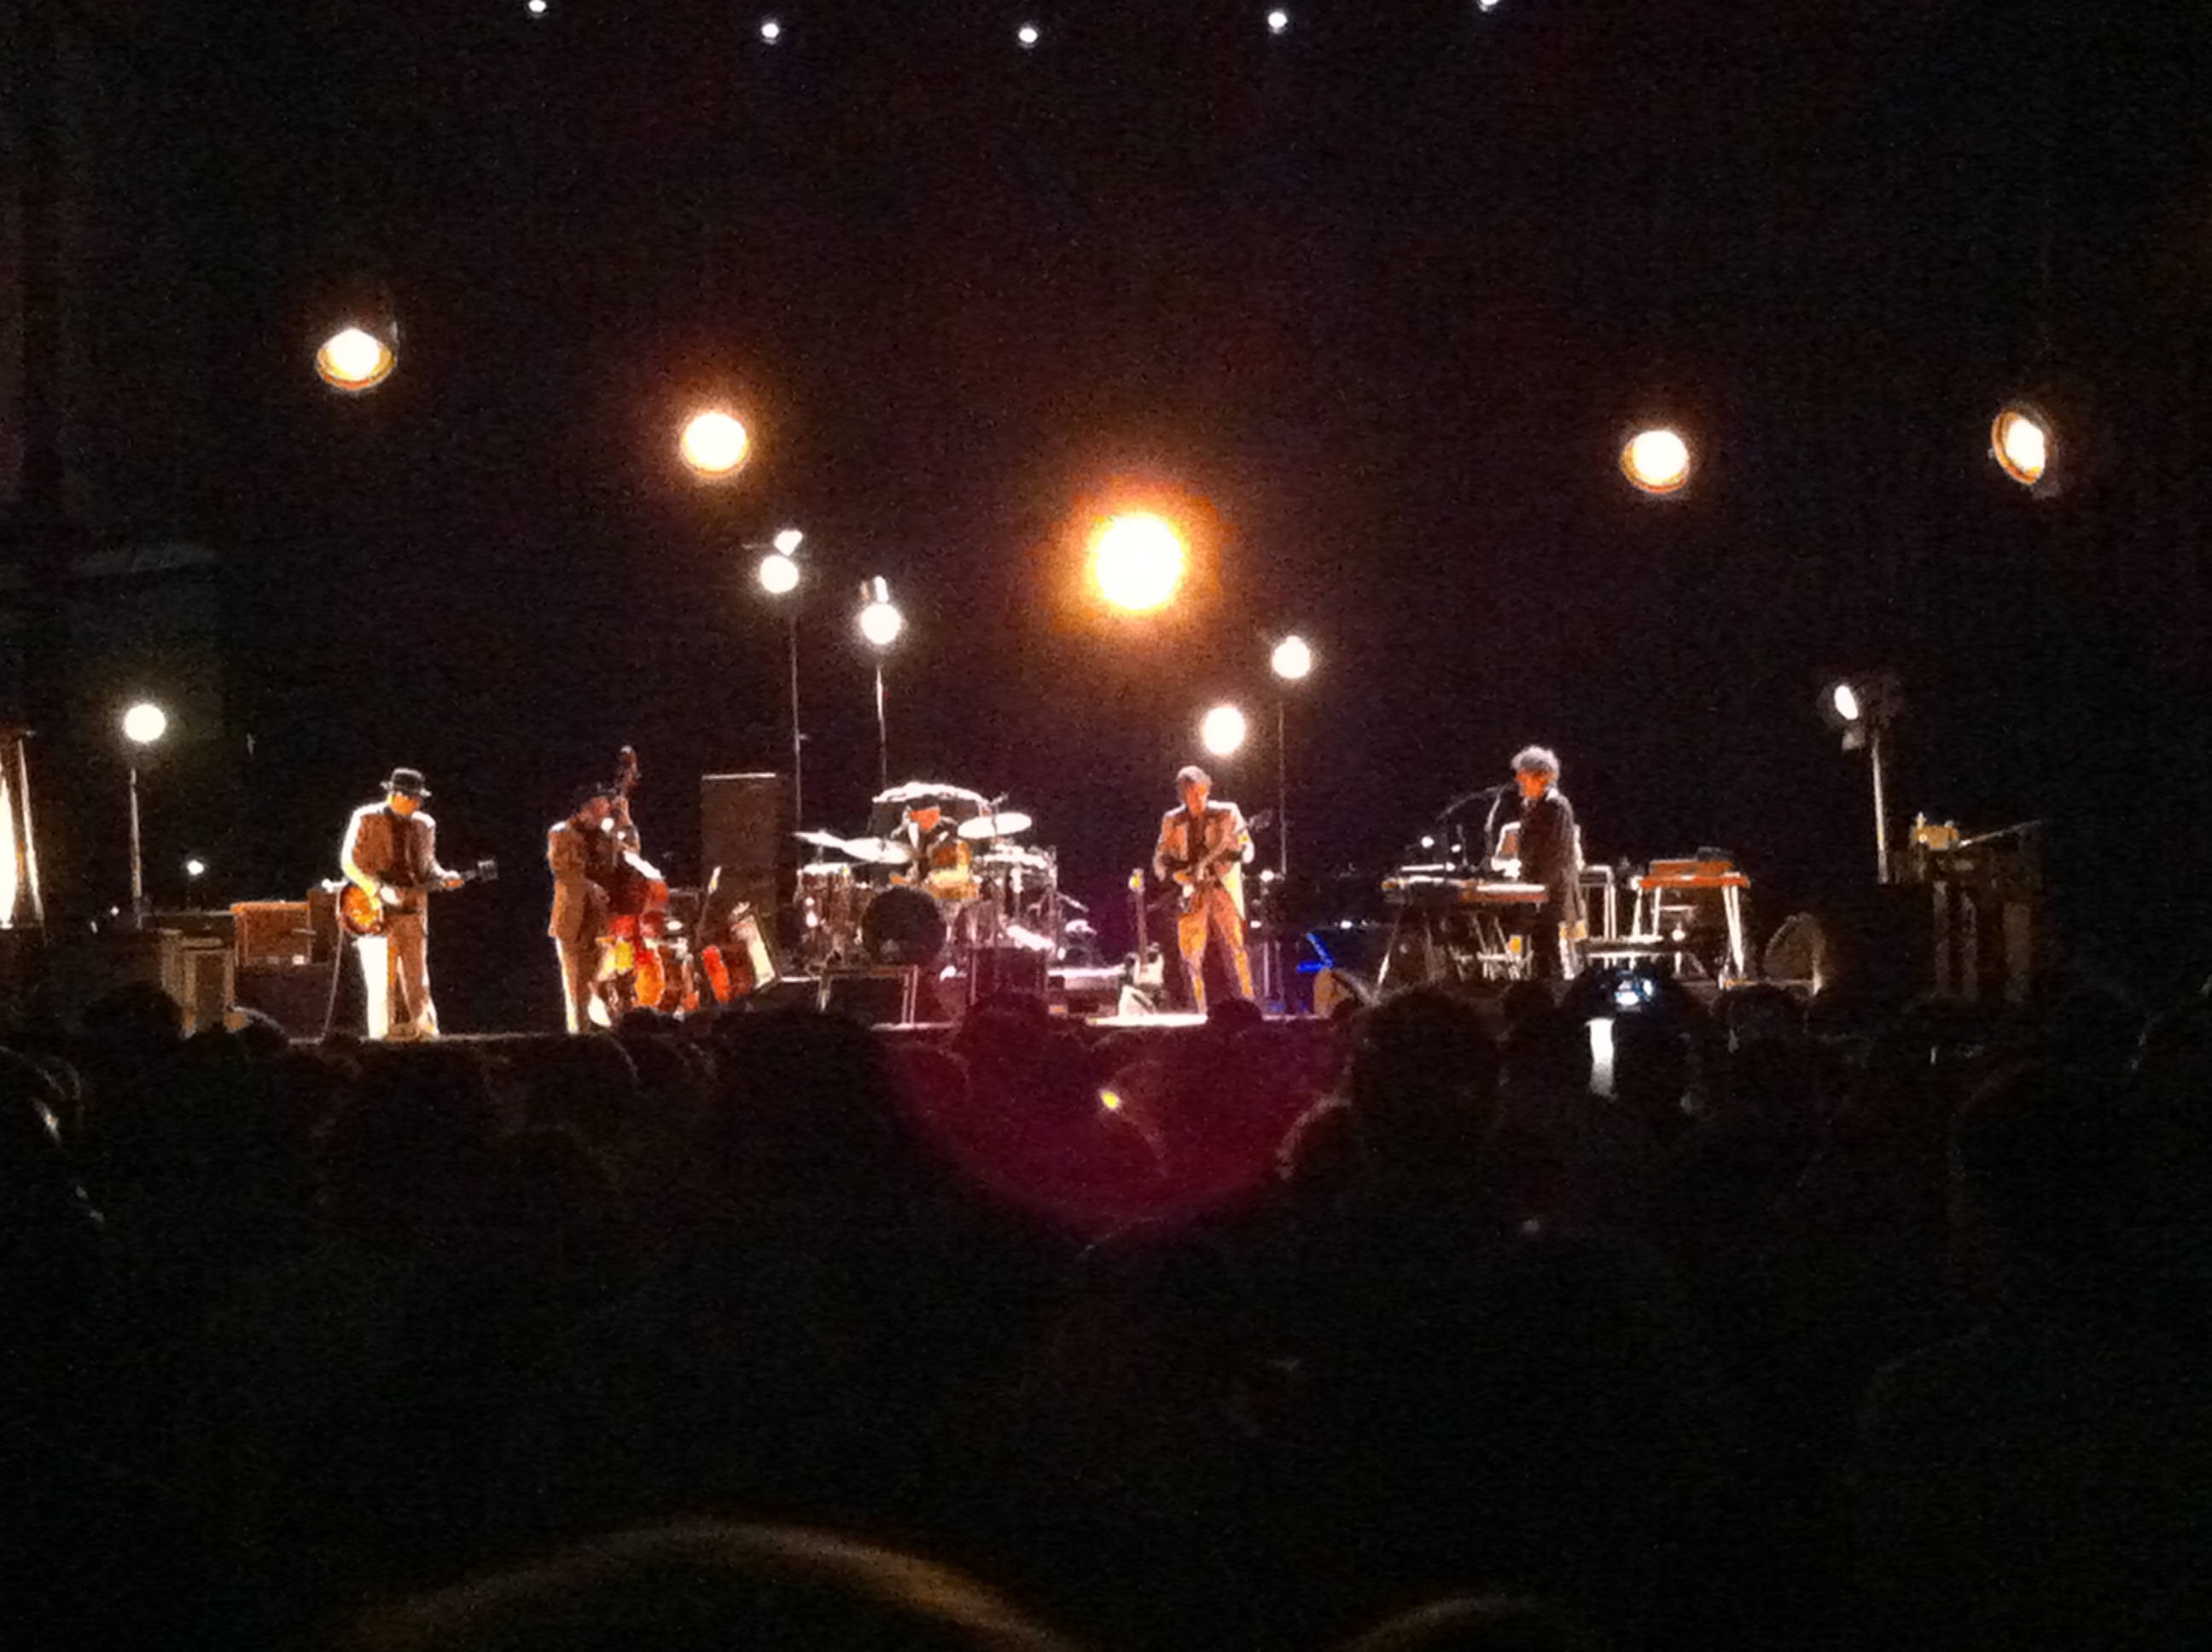 Concert Review Dylan Wilco My Morning Jacket Offer Music History